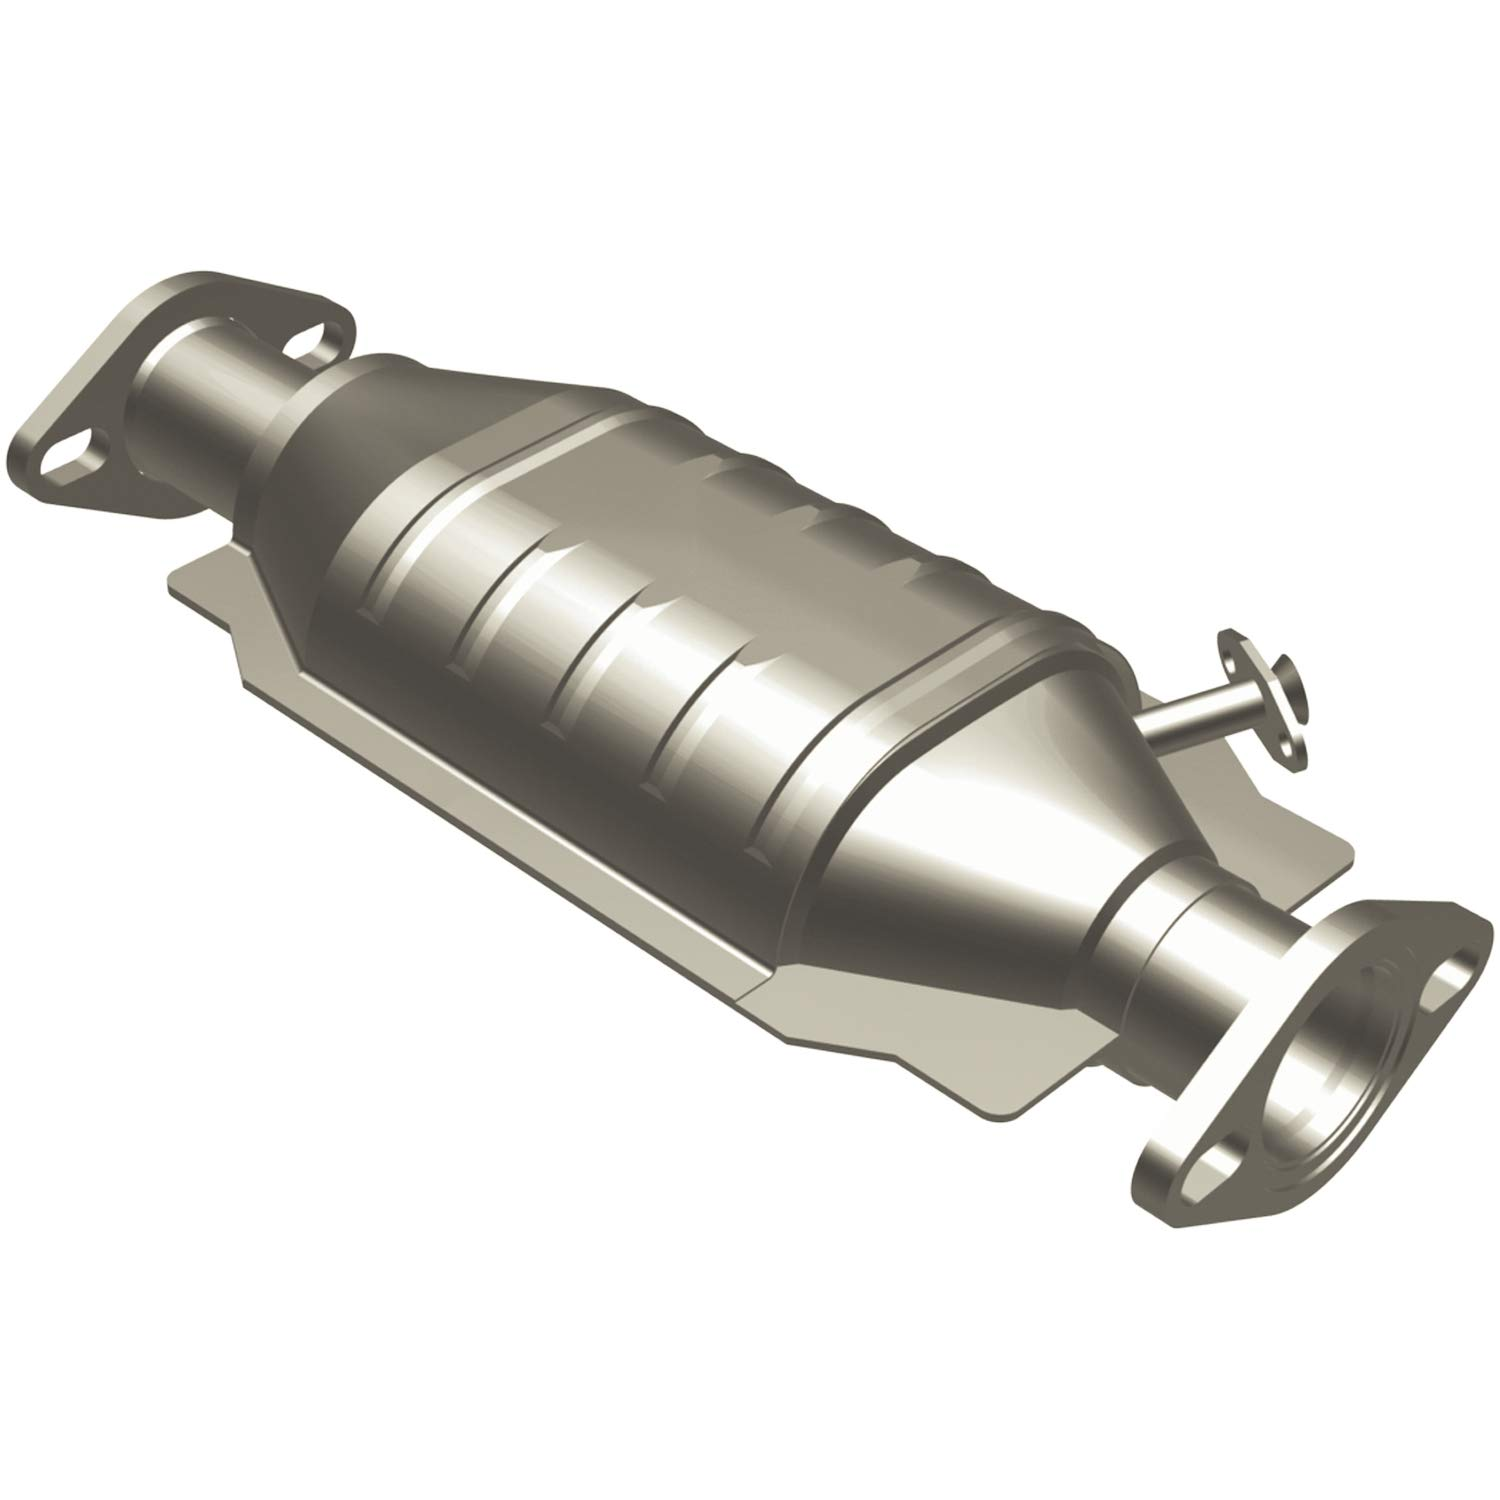 Direct-Fit Catalytic Converter AB Catalytic 6122 Non C.A.R.B. Compliant